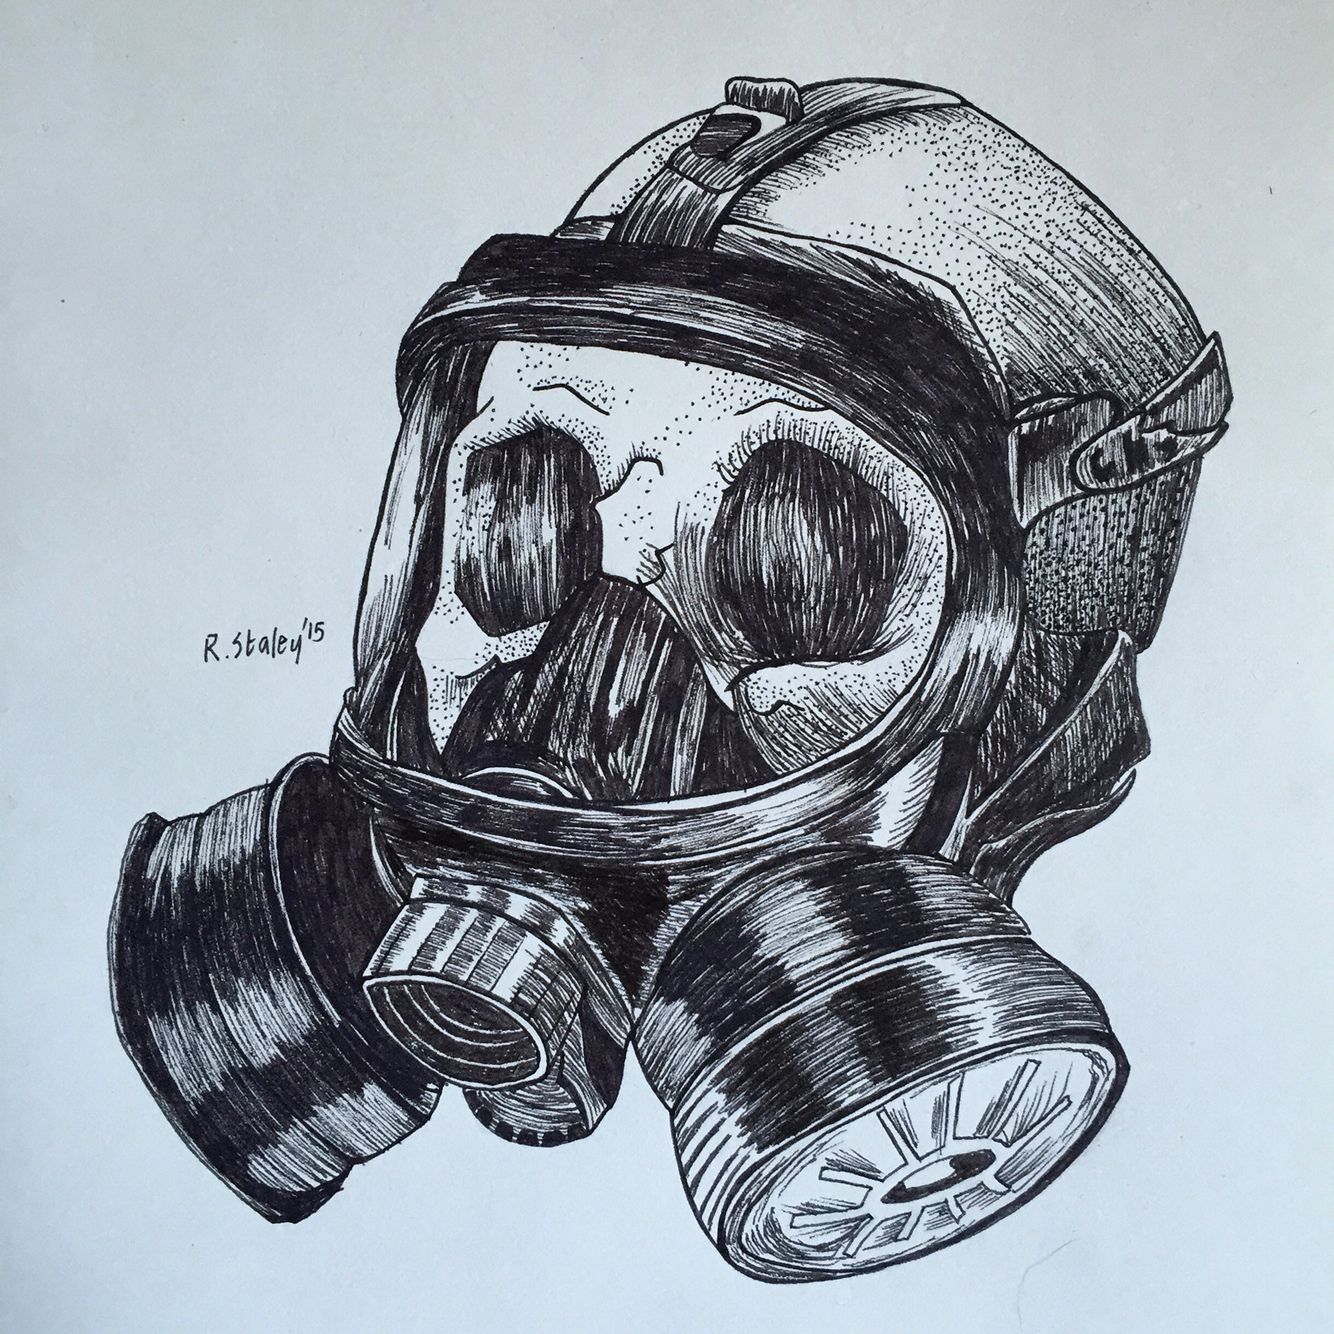 Ww2 gas mask in skull